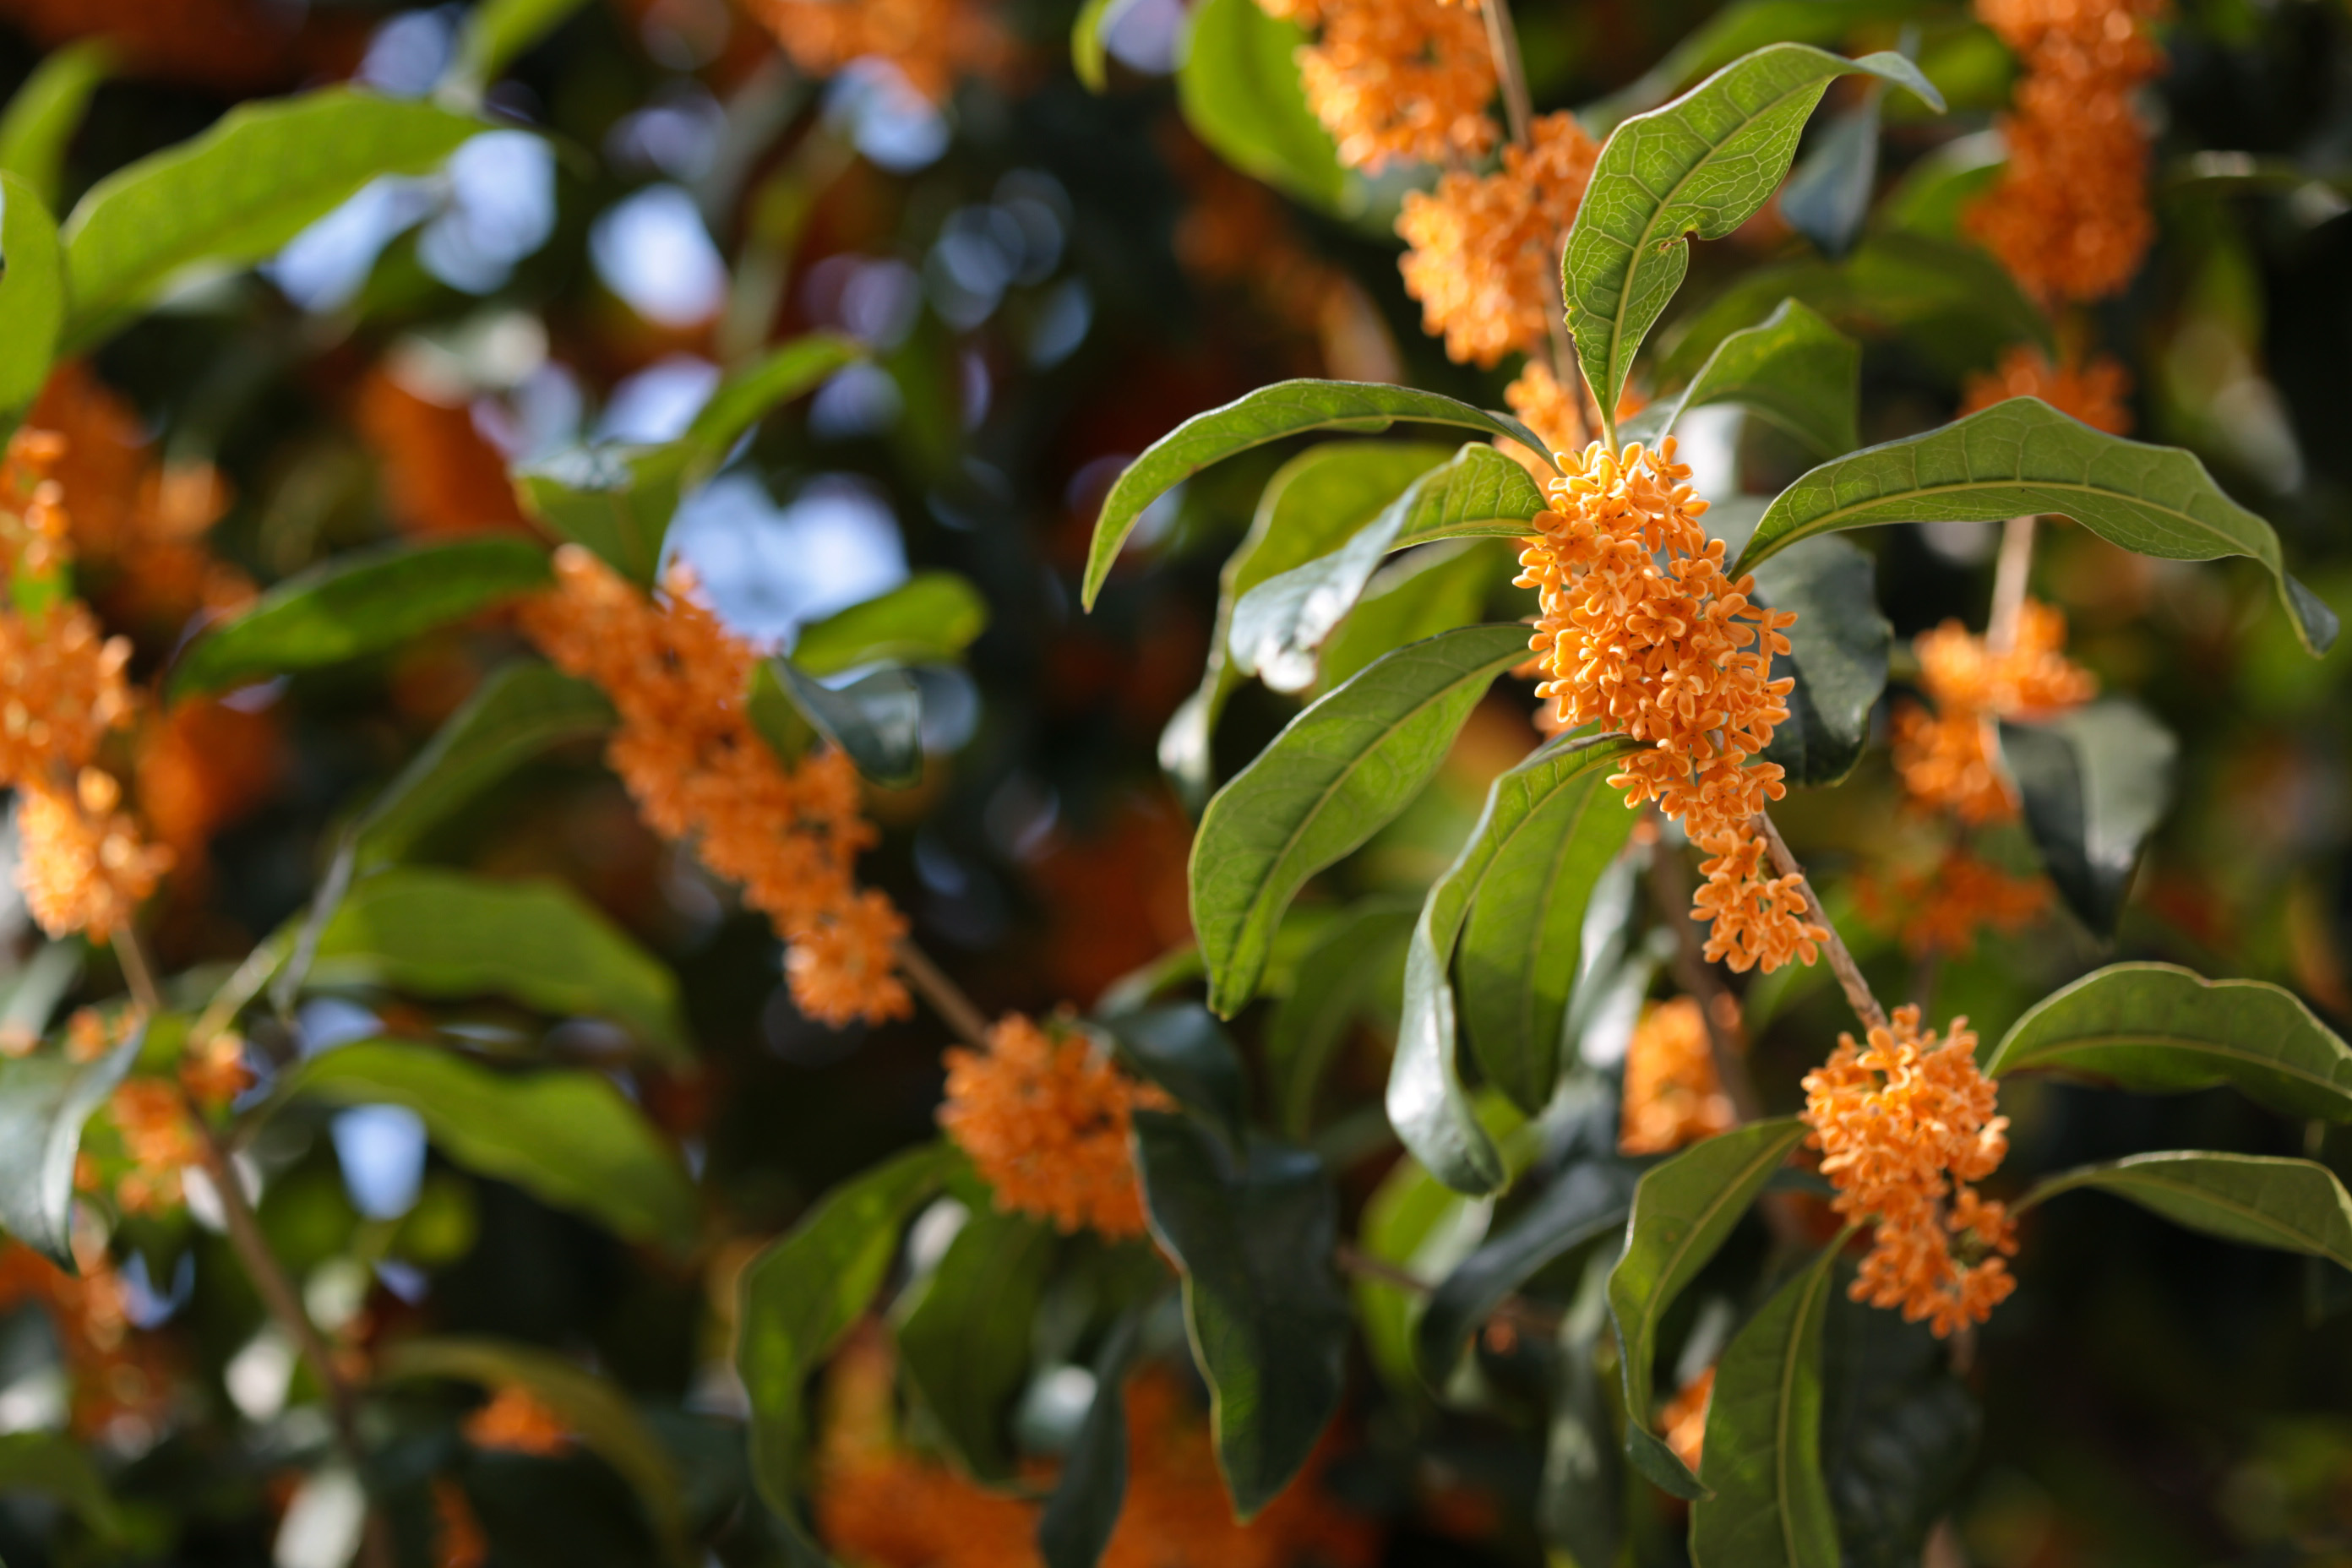 http://upload.wikimedia.org/wikipedia/commons/e/ea/Osmanthus_fragrans_%28orange_flowers%29.jpg